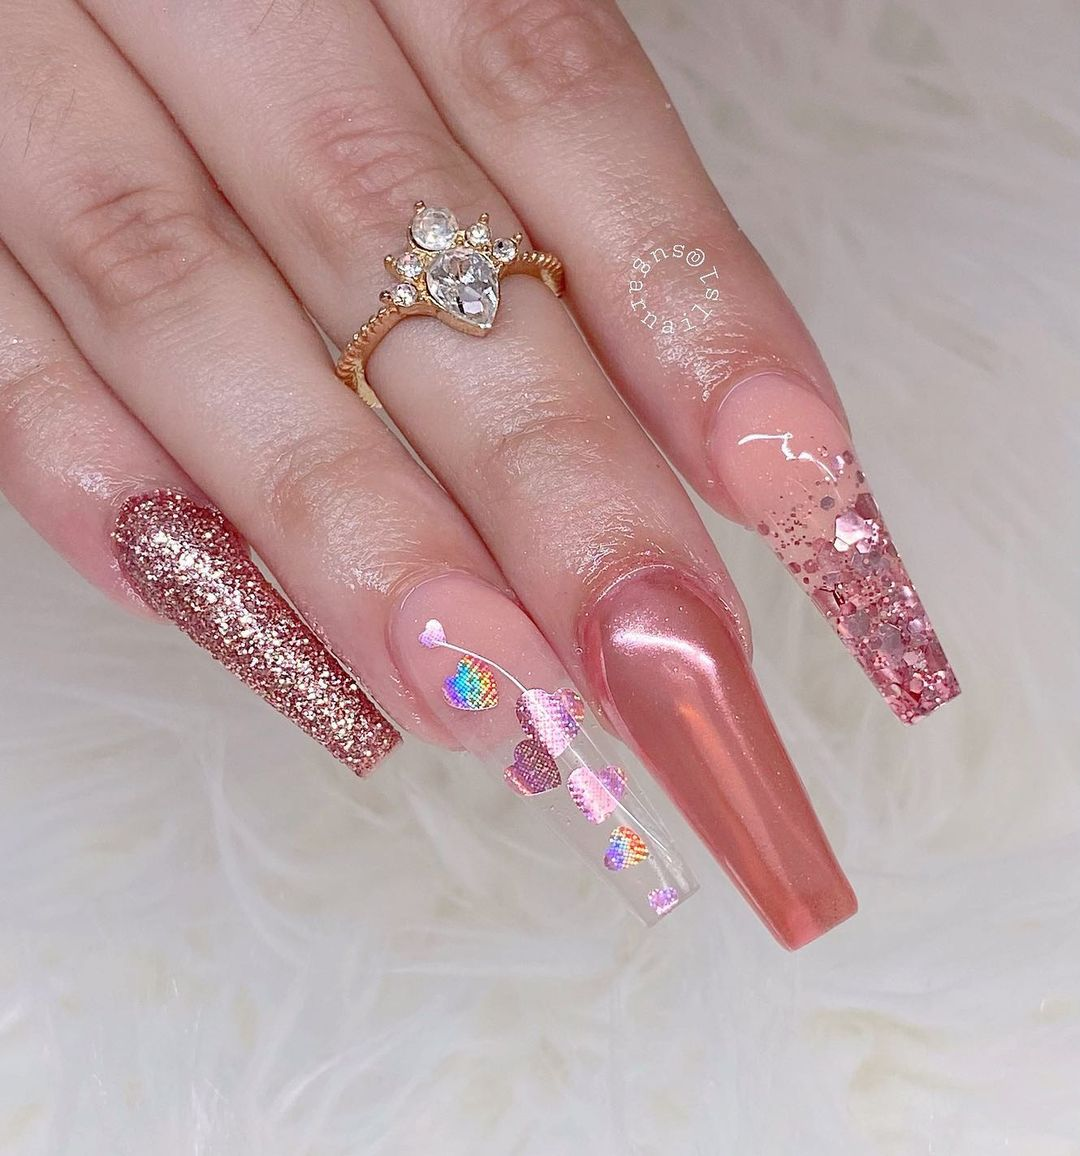 Pink chrome nails with glitter